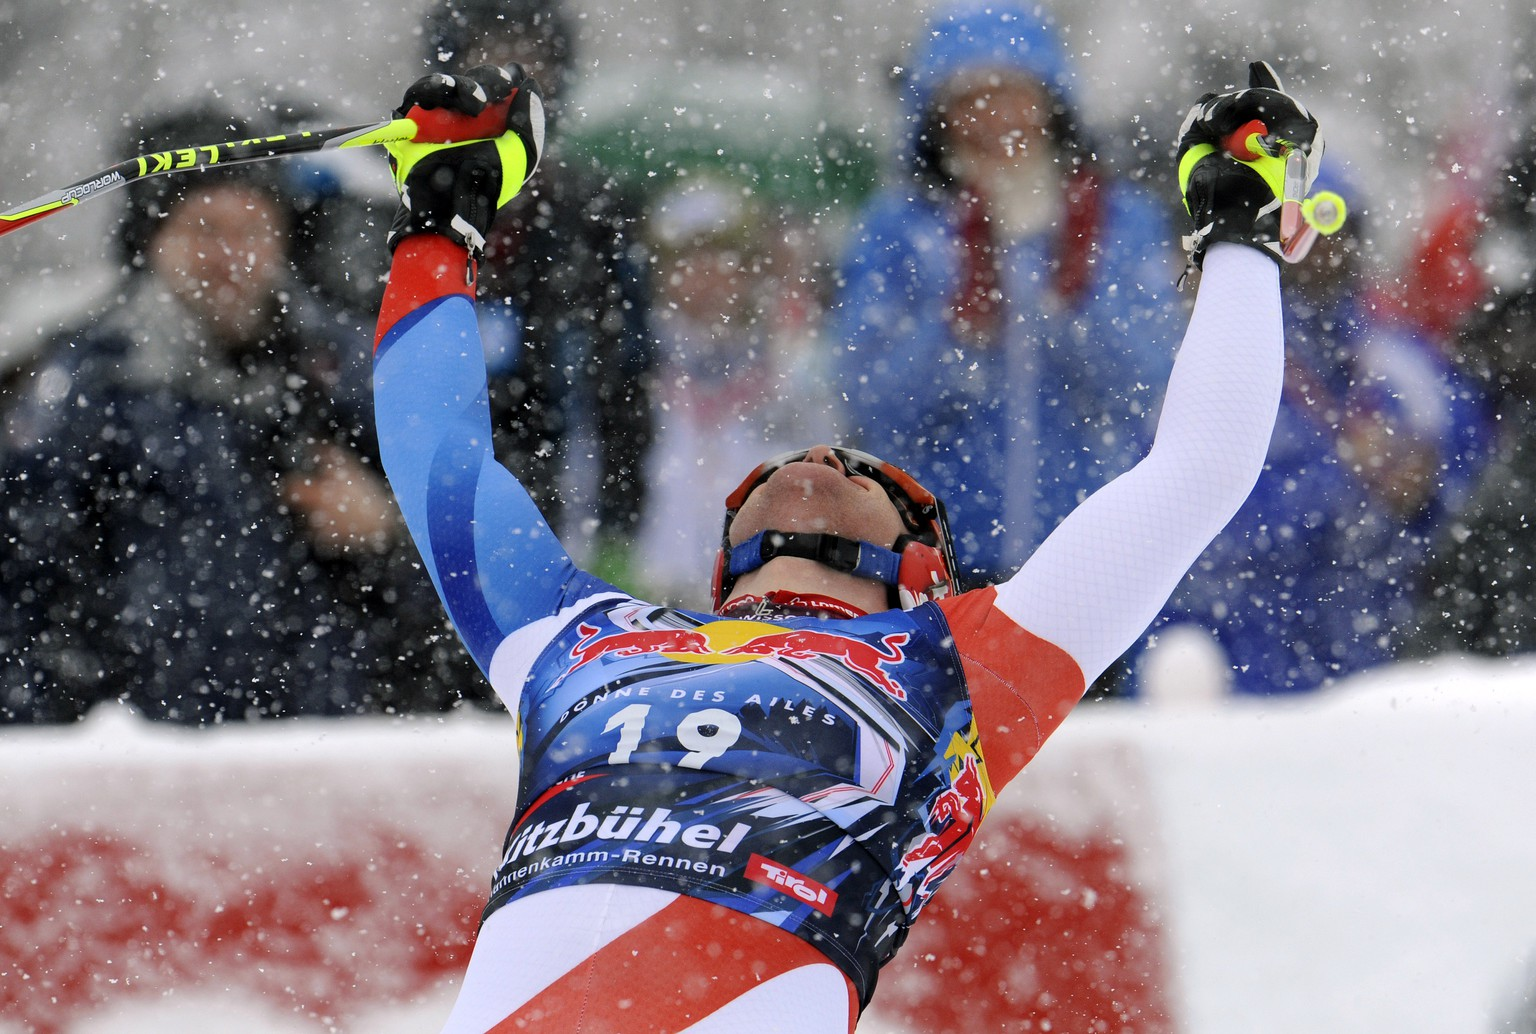 Didier Cuche, of Switzerland, celebrates in the finish area after winning an alpine ski, men's World Cup downhill, in Kitzbuehel, Austria, Saturday, Jan. 21, 2012. Didier Cuche won the classic World Cup downhill on the Streif course for a record fifth time on Saturday. (AP Photo/Giovanni Auletta)